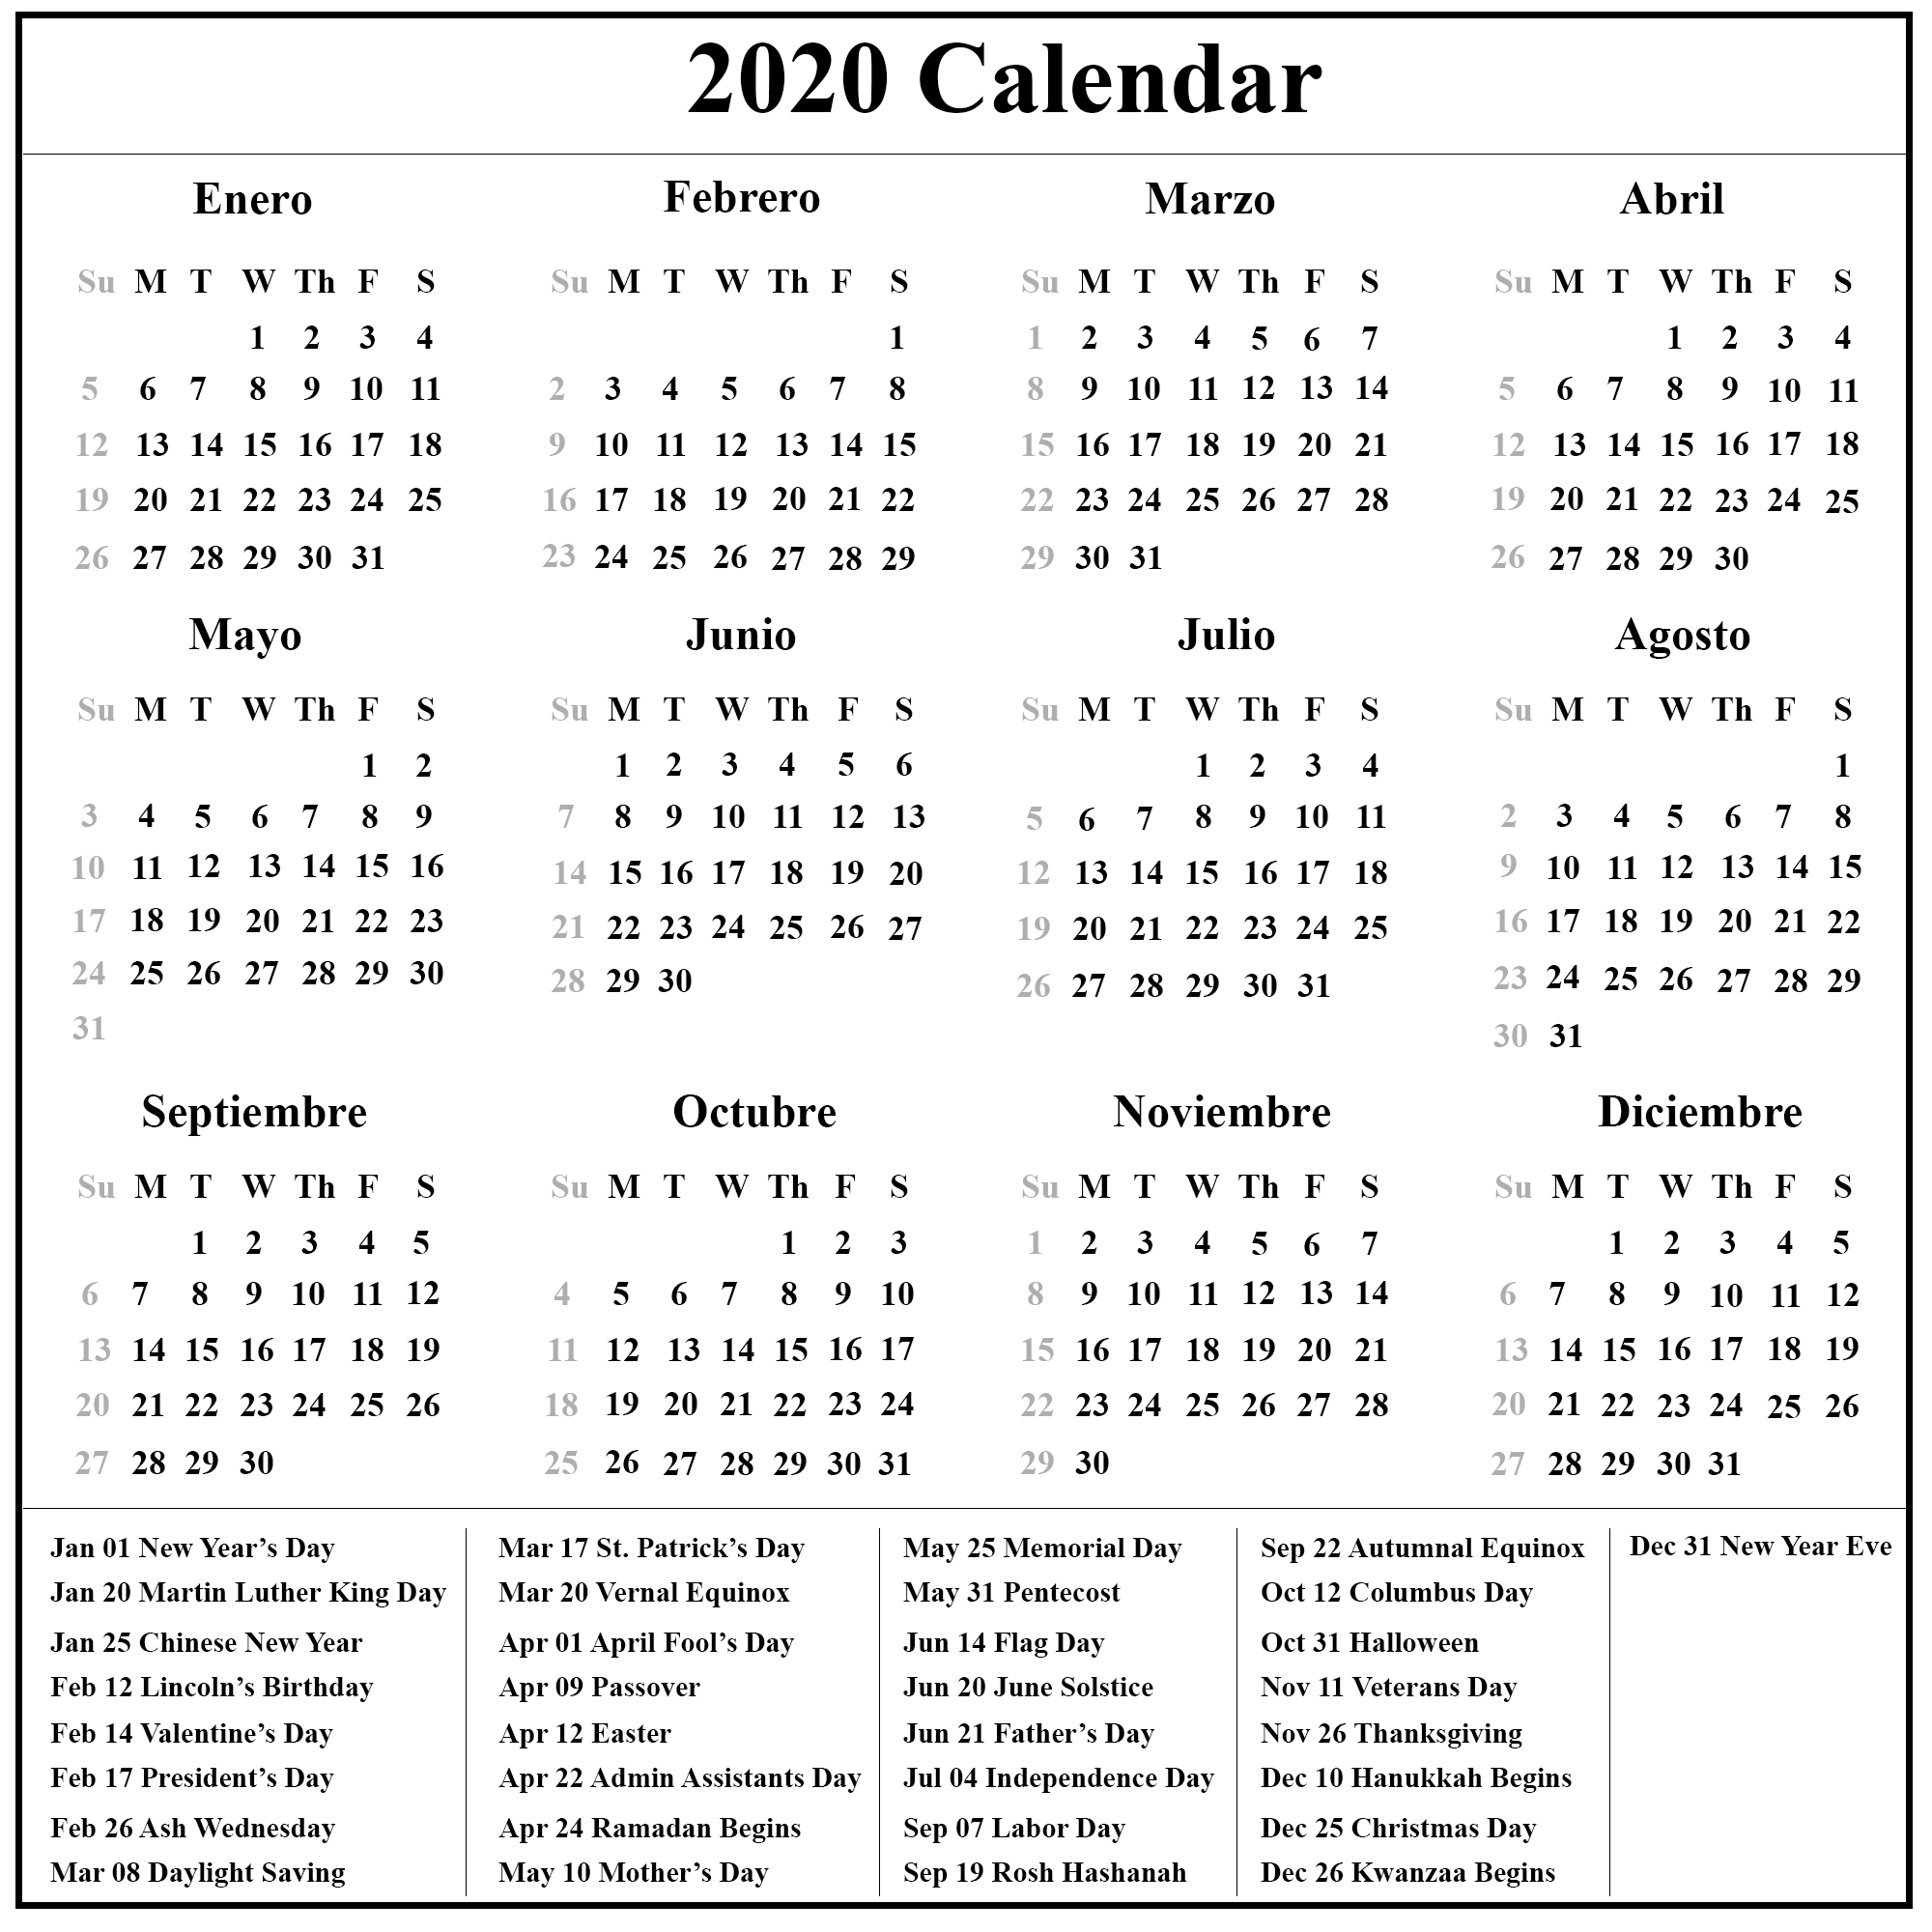 Calendario Lunar 2020.Free Printable Spanish Calendar 2020 2020 Calendario